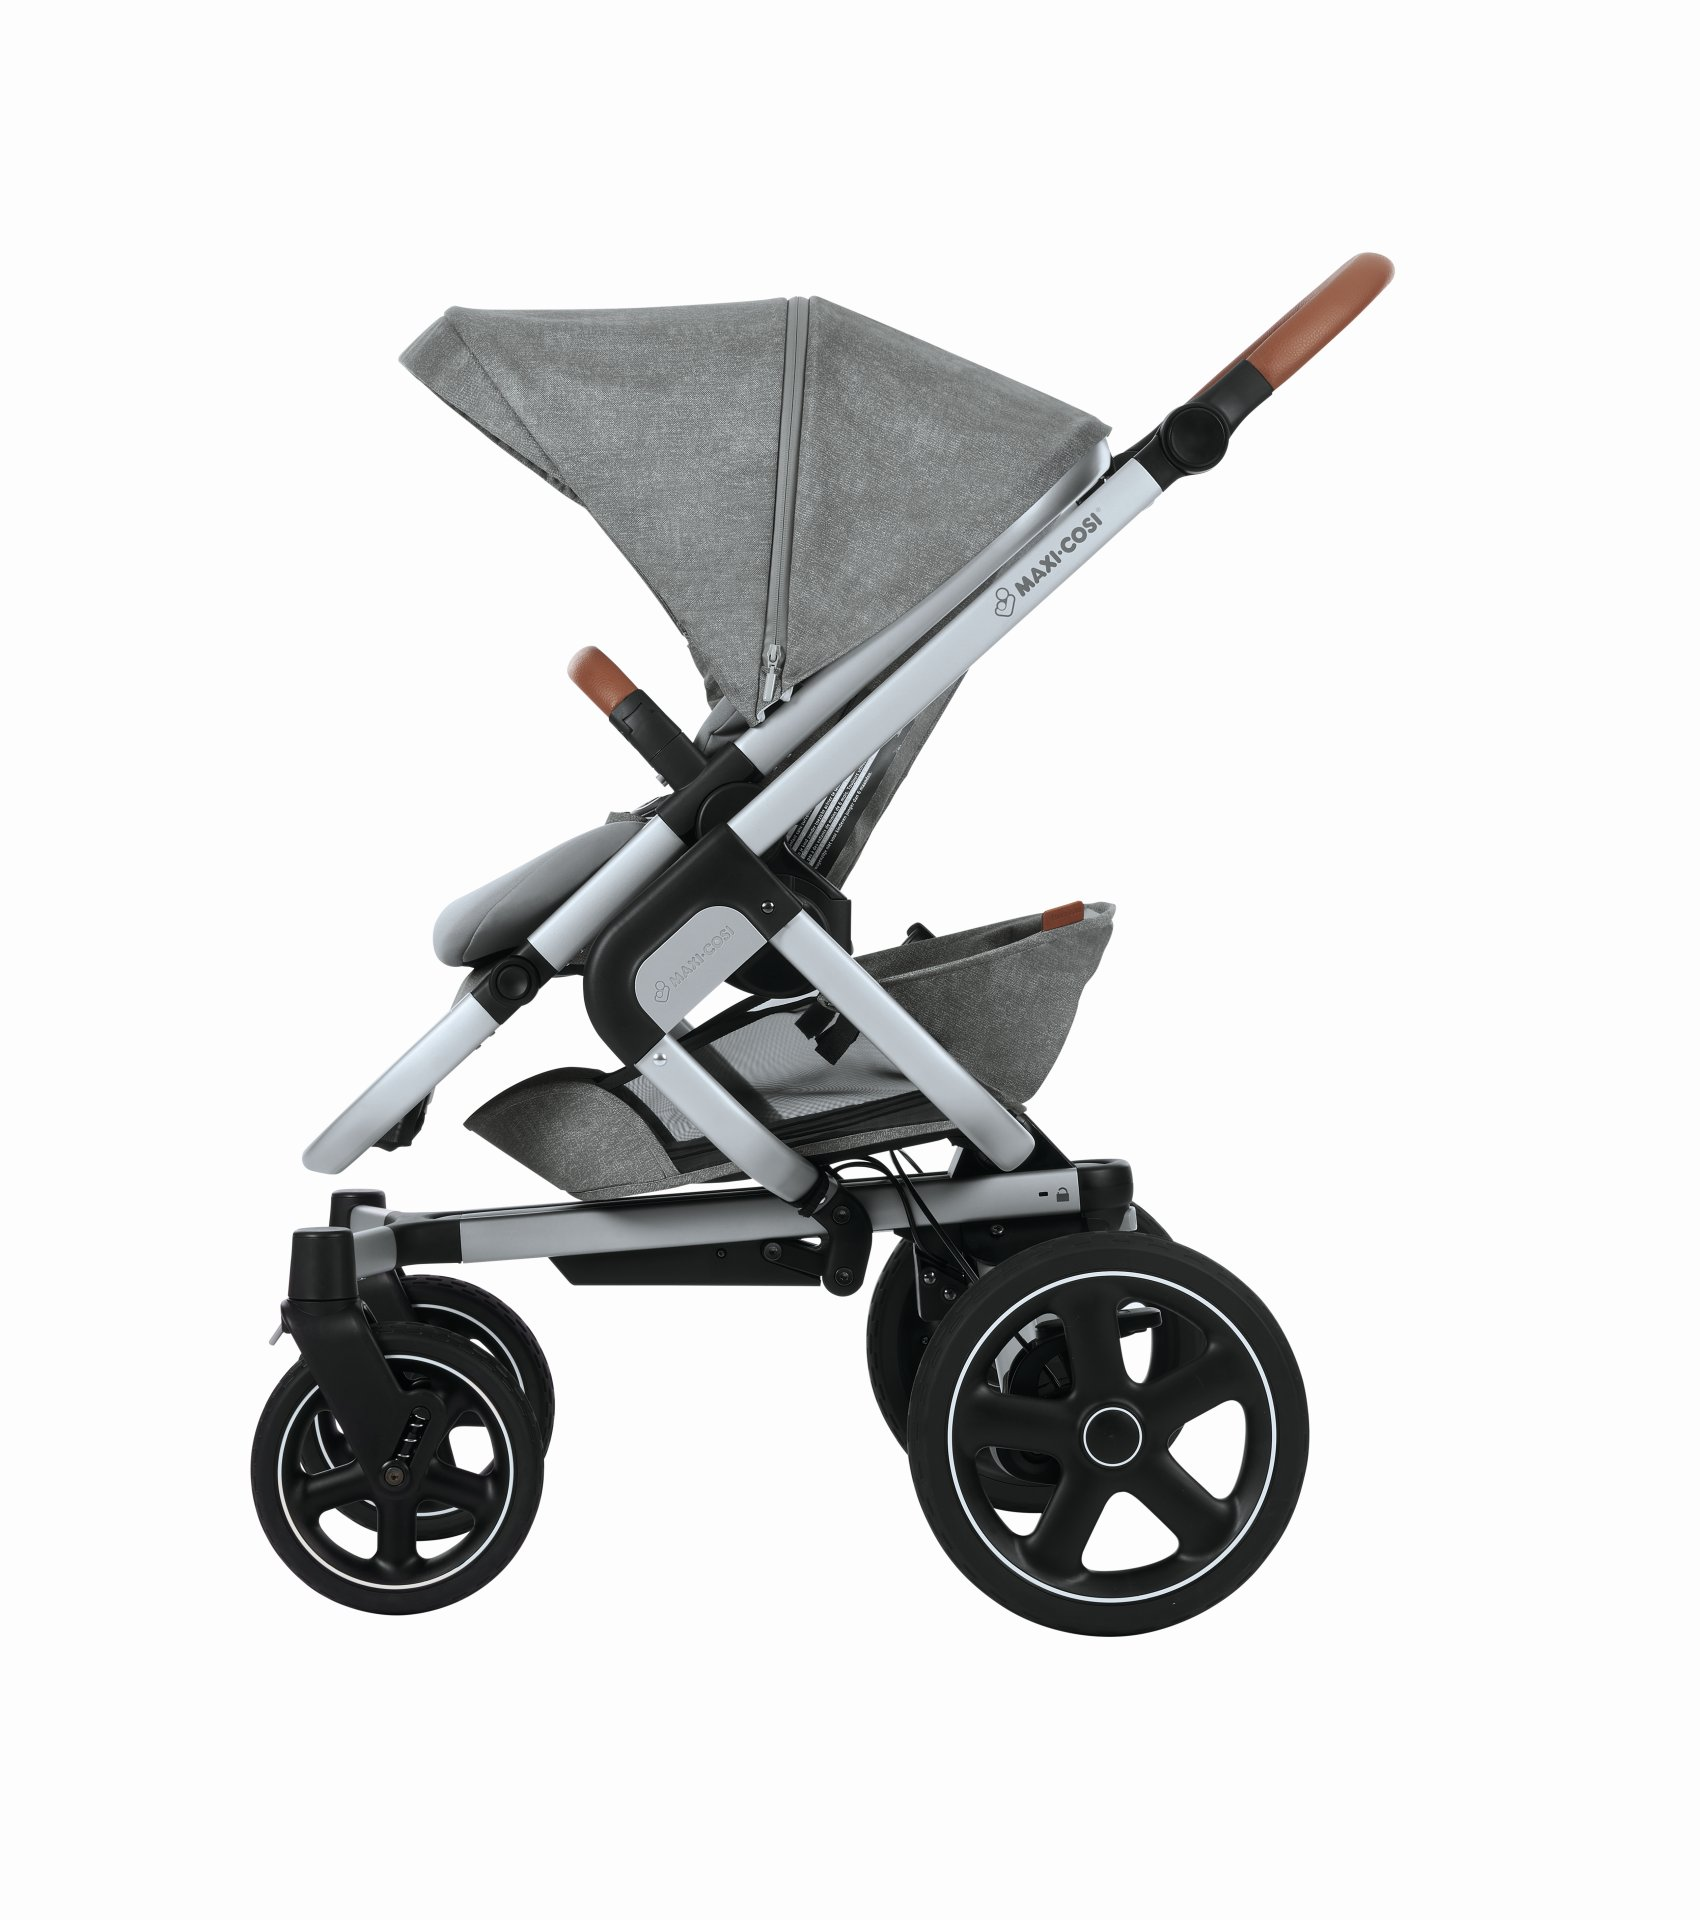 maxi cosi 4 wheels stroller nova 2018 nomad grey buy at. Black Bedroom Furniture Sets. Home Design Ideas